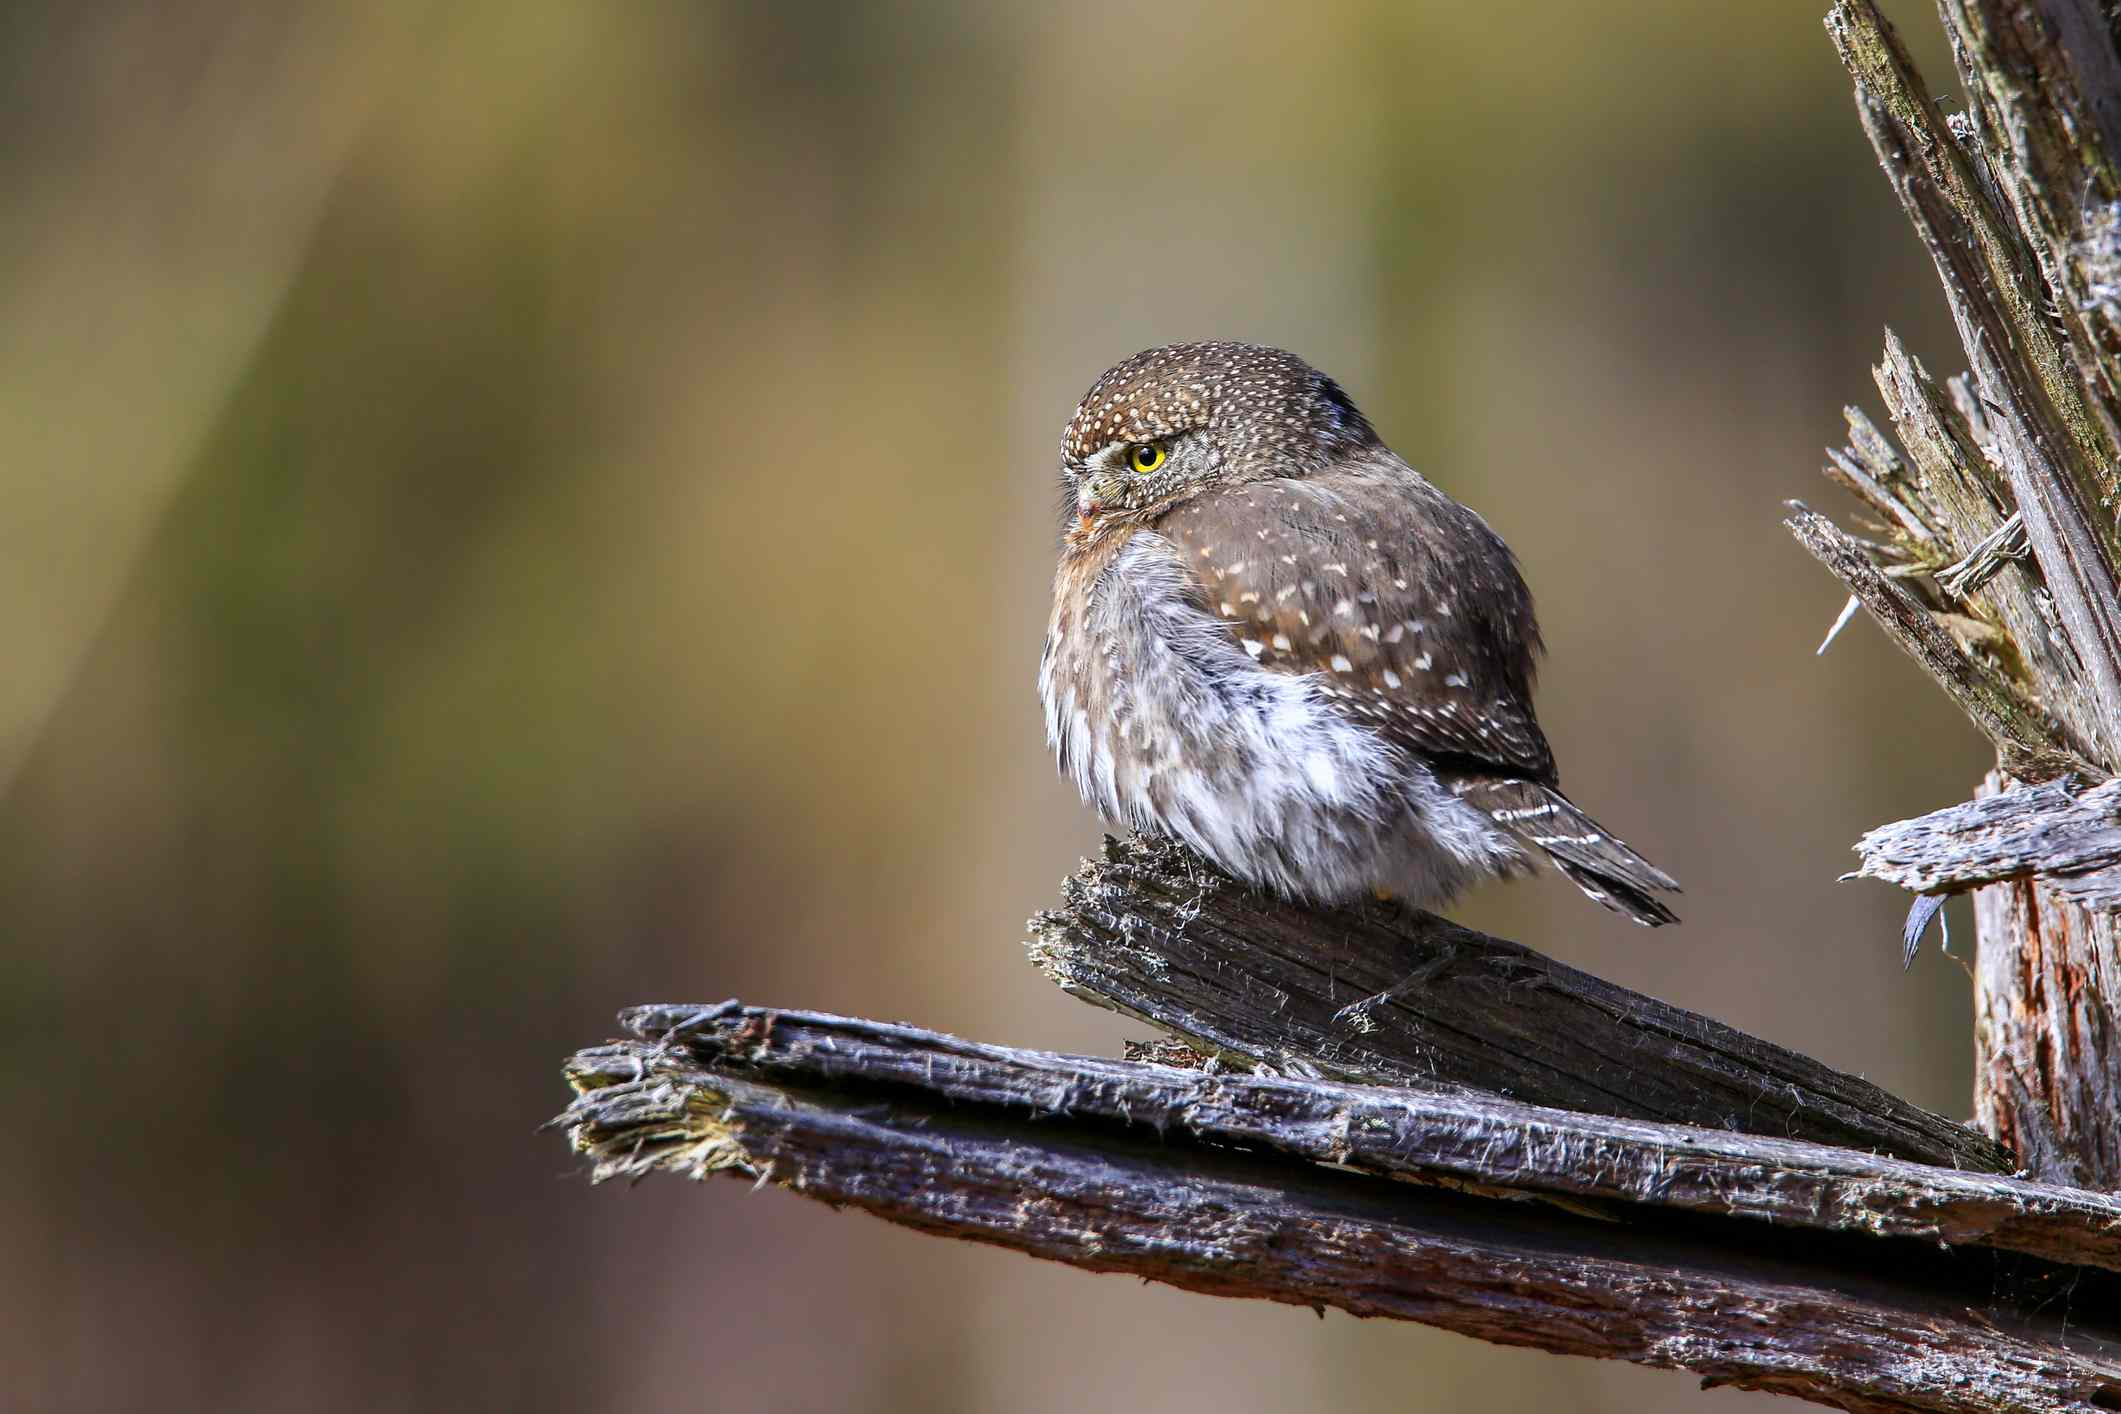 tan and white pygmy owl with yellow eyes sits on tree